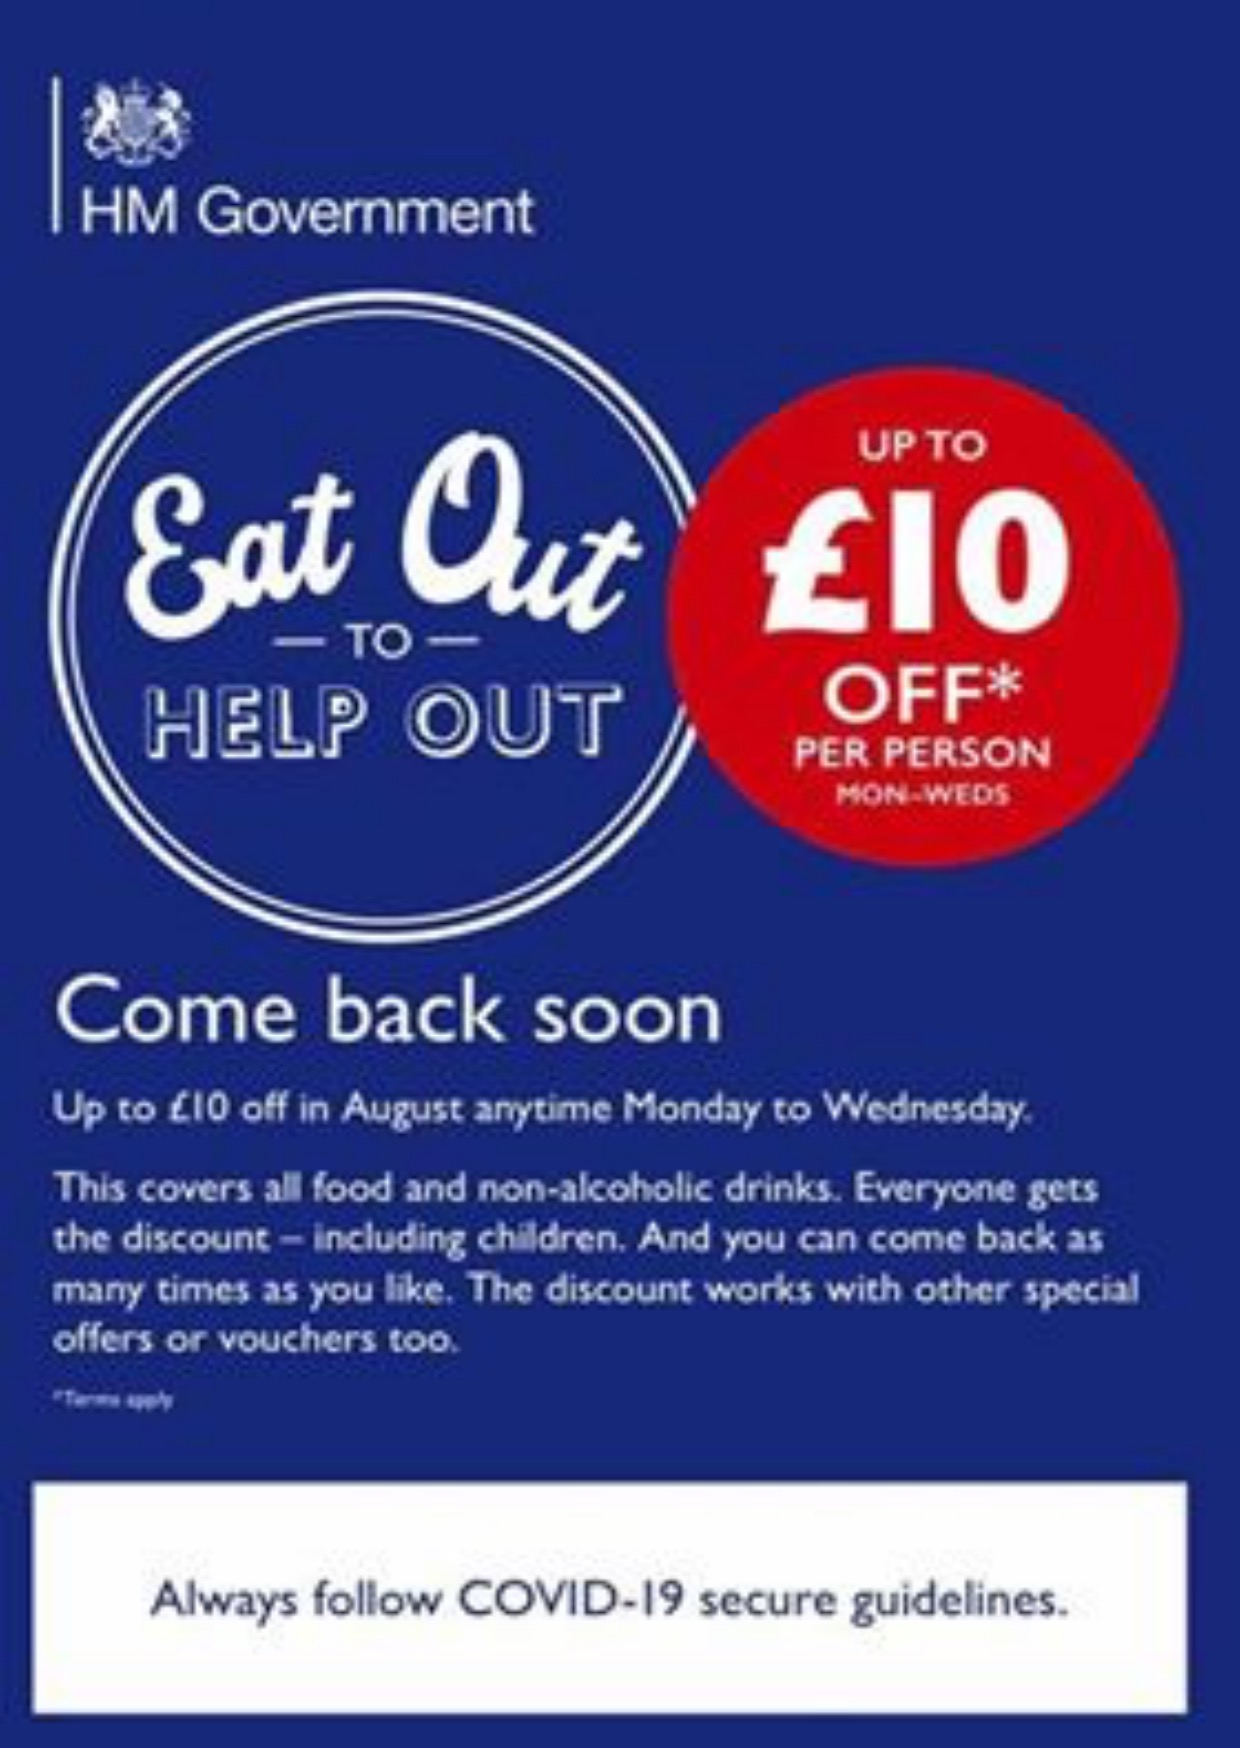 Eat out to help out at Tesco's Cafe in August